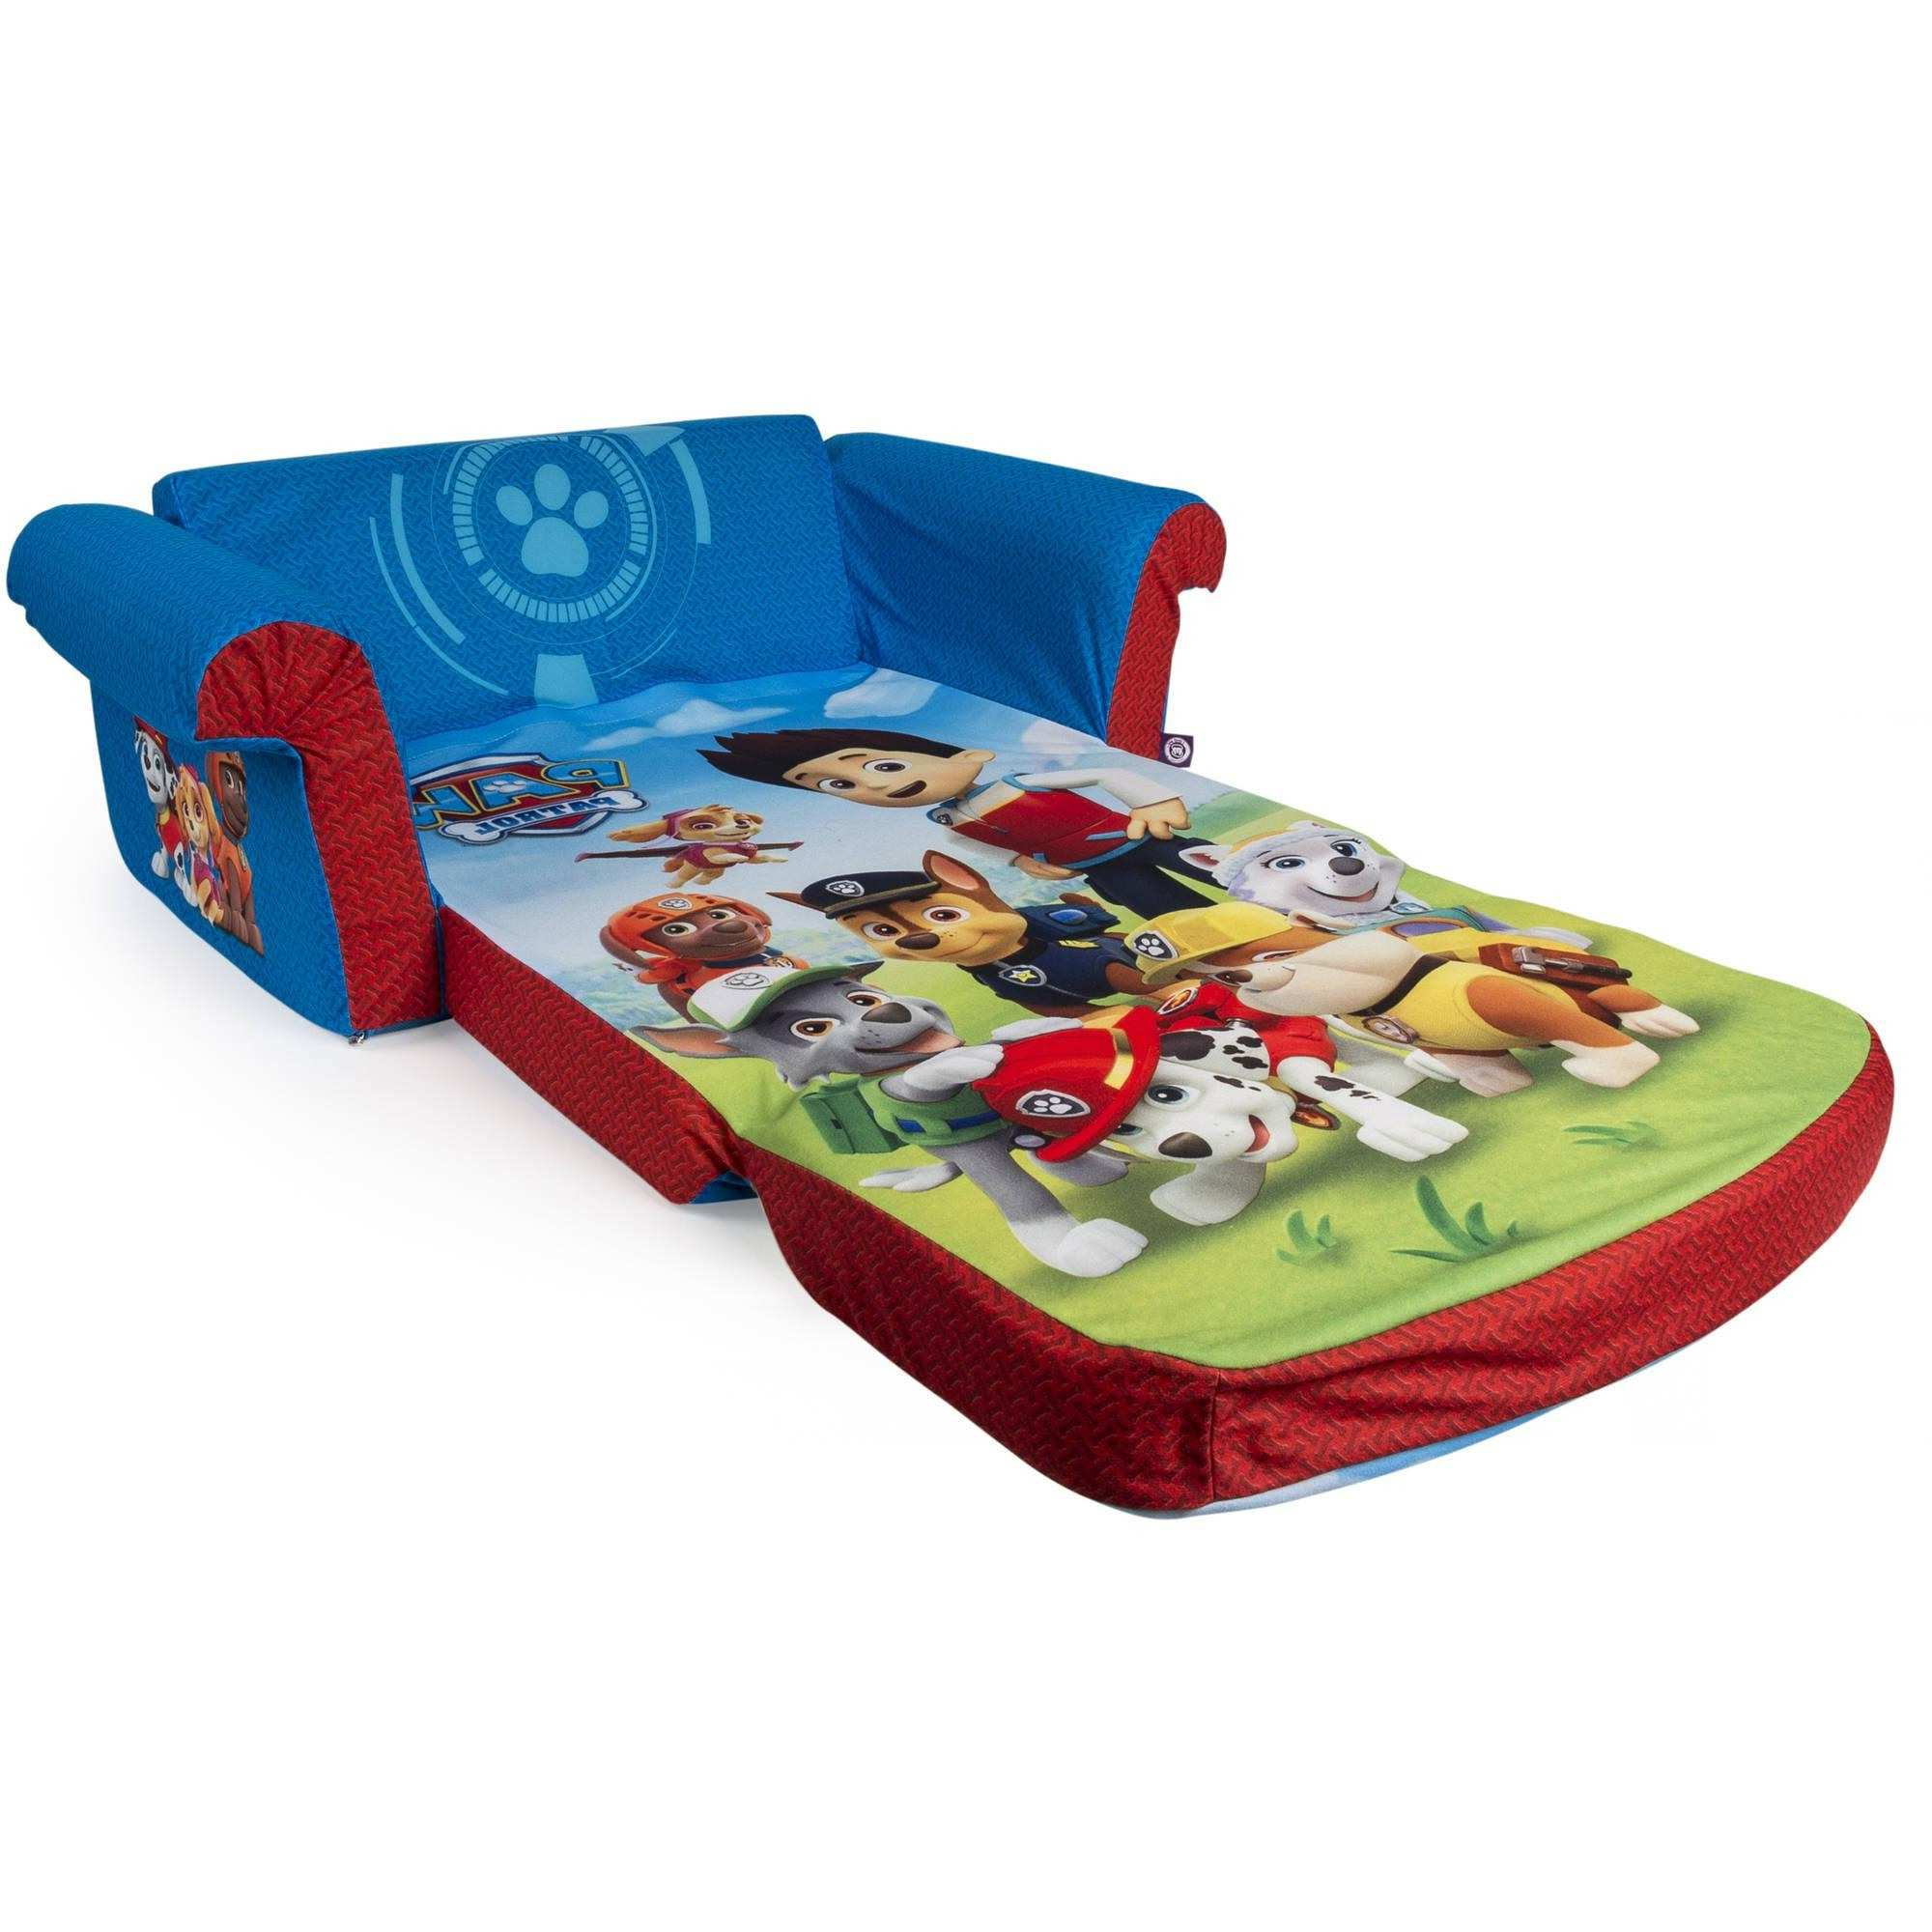 Most Current 20 Best Childrens Sofa Bed Chairs From Awesome Flip Open Foam Sofa Throughout Childrens Sofa Bed Chairs (Gallery 16 of 20)